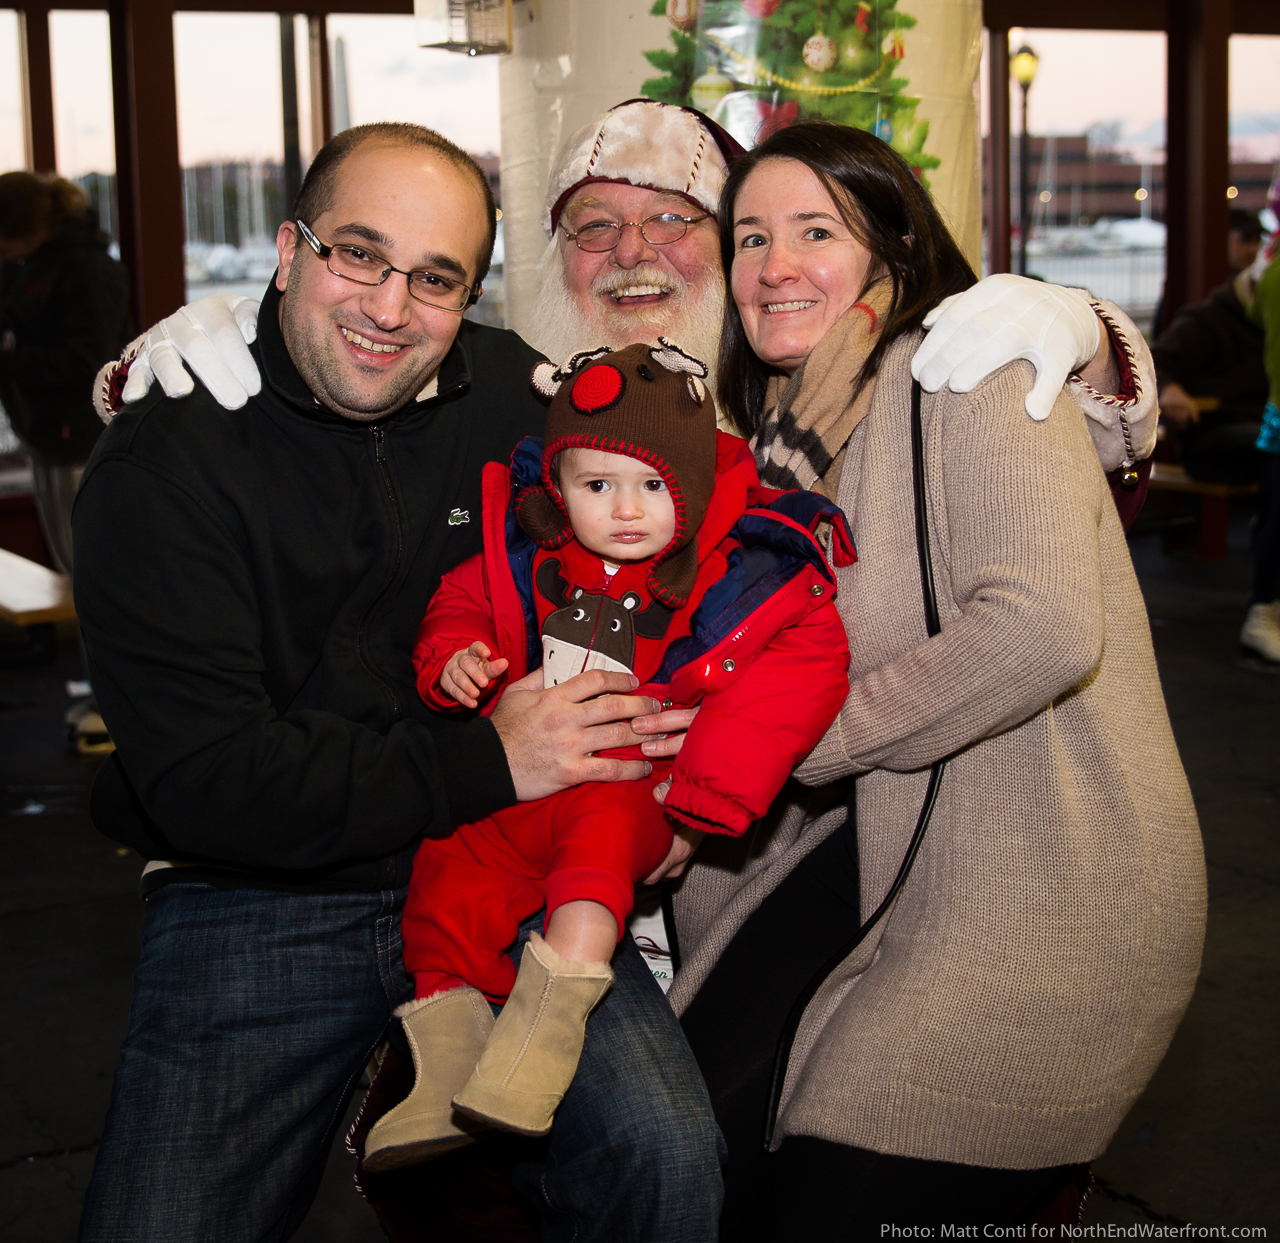 The Bamonte Family with Santa Claus